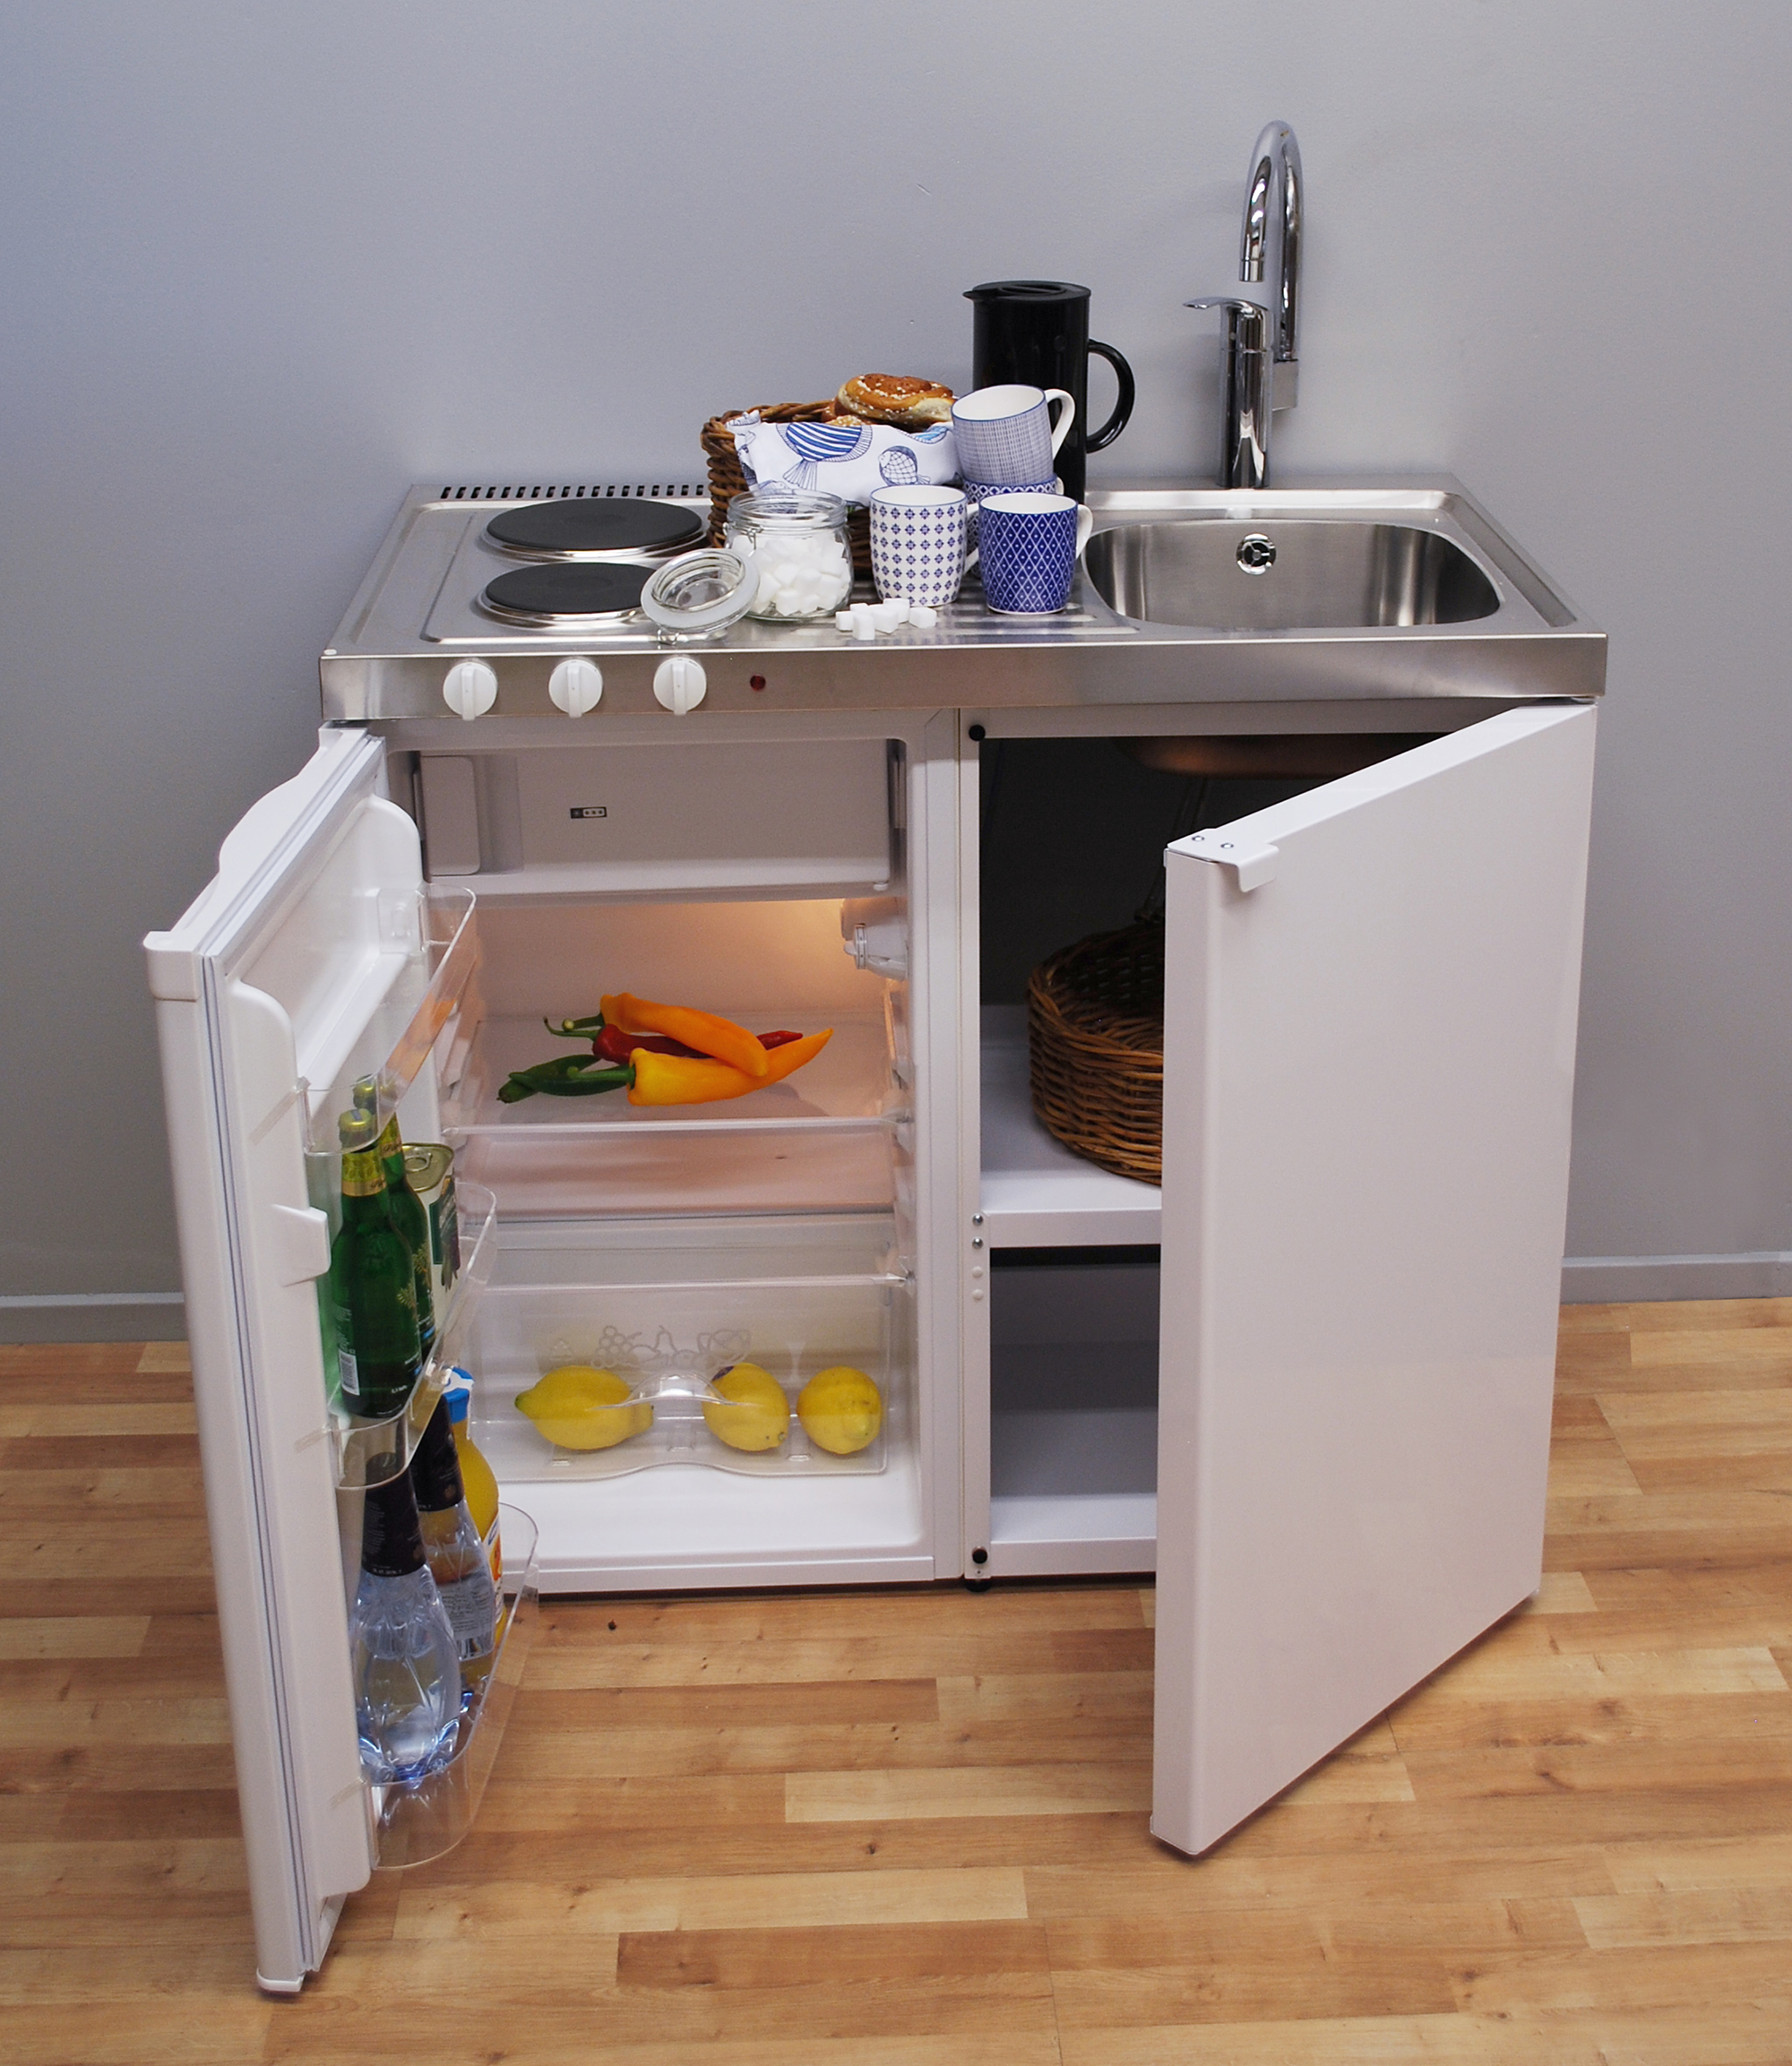 John strand mini kitchen our standard mini kitchen for Kitchen units for small kitchen